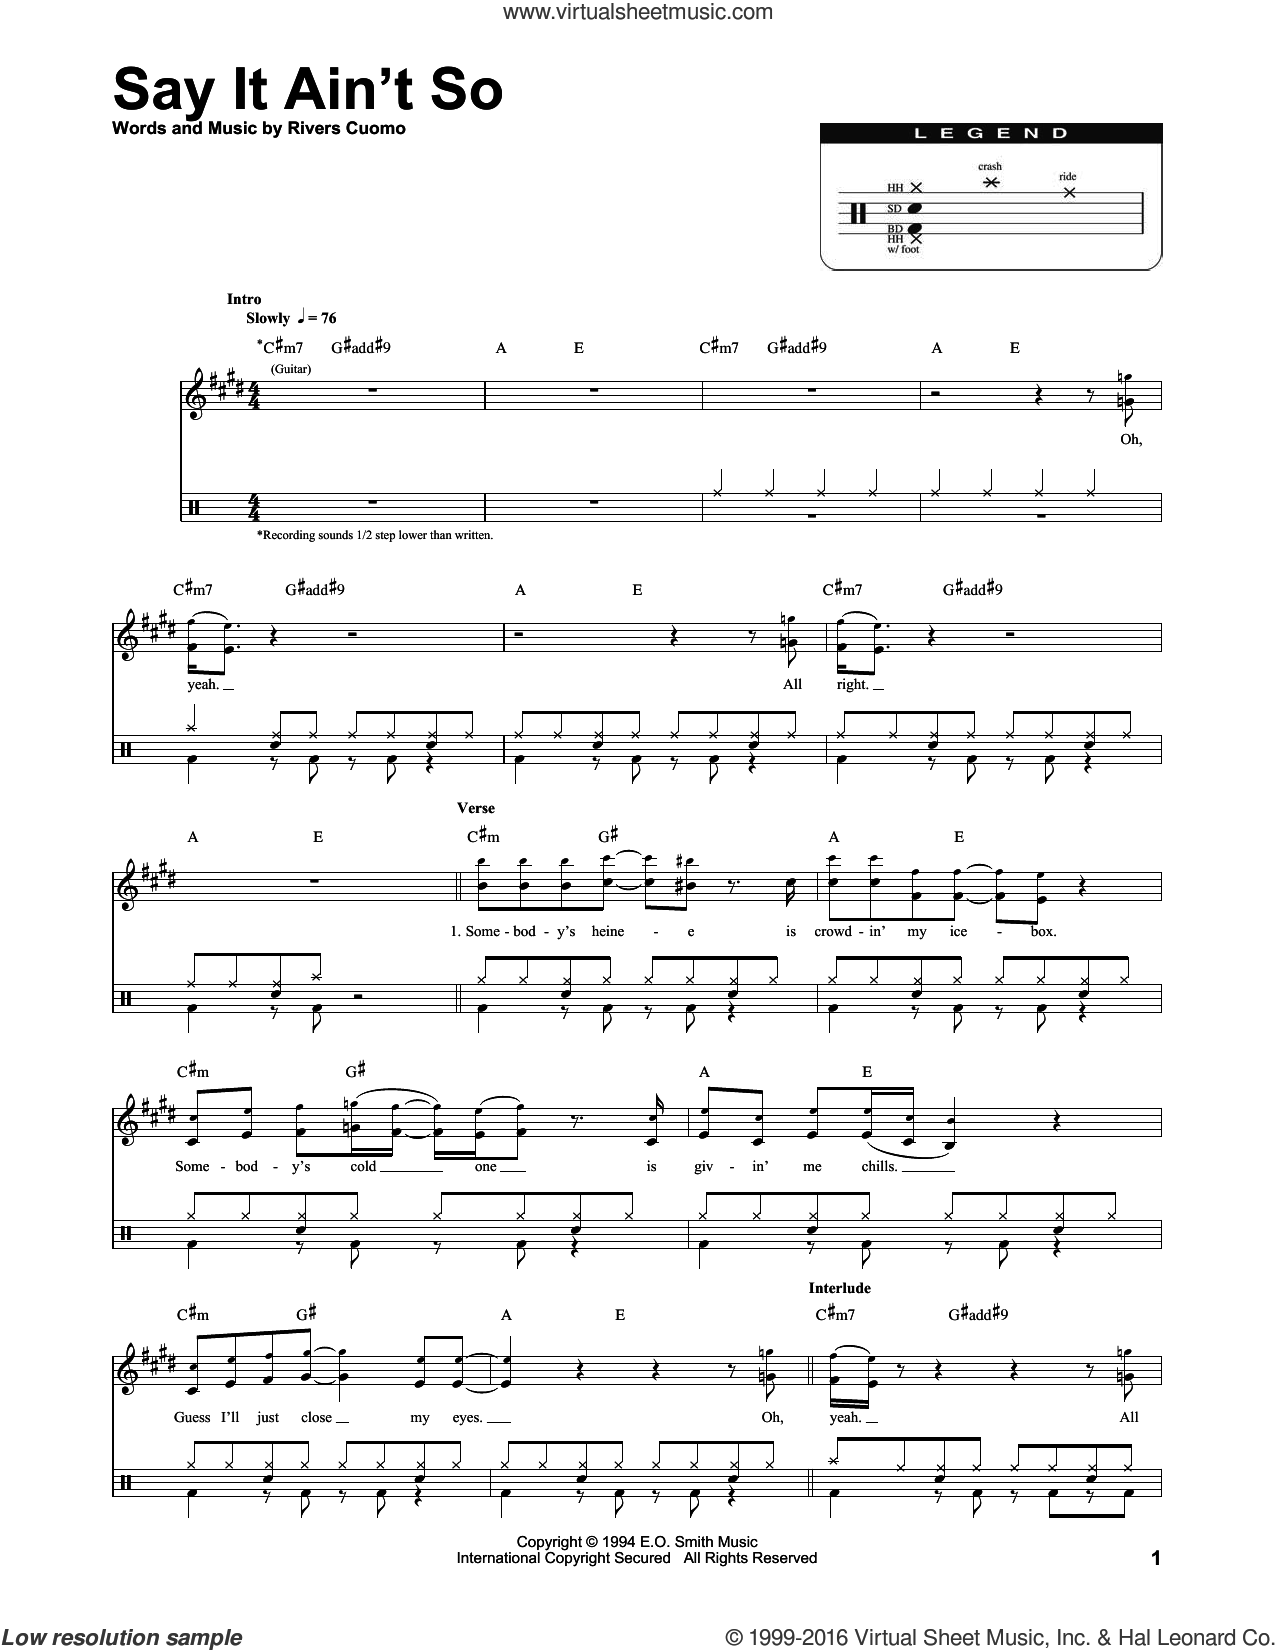 Weezer - Say It Ain't So sheet music for drums [PDF]